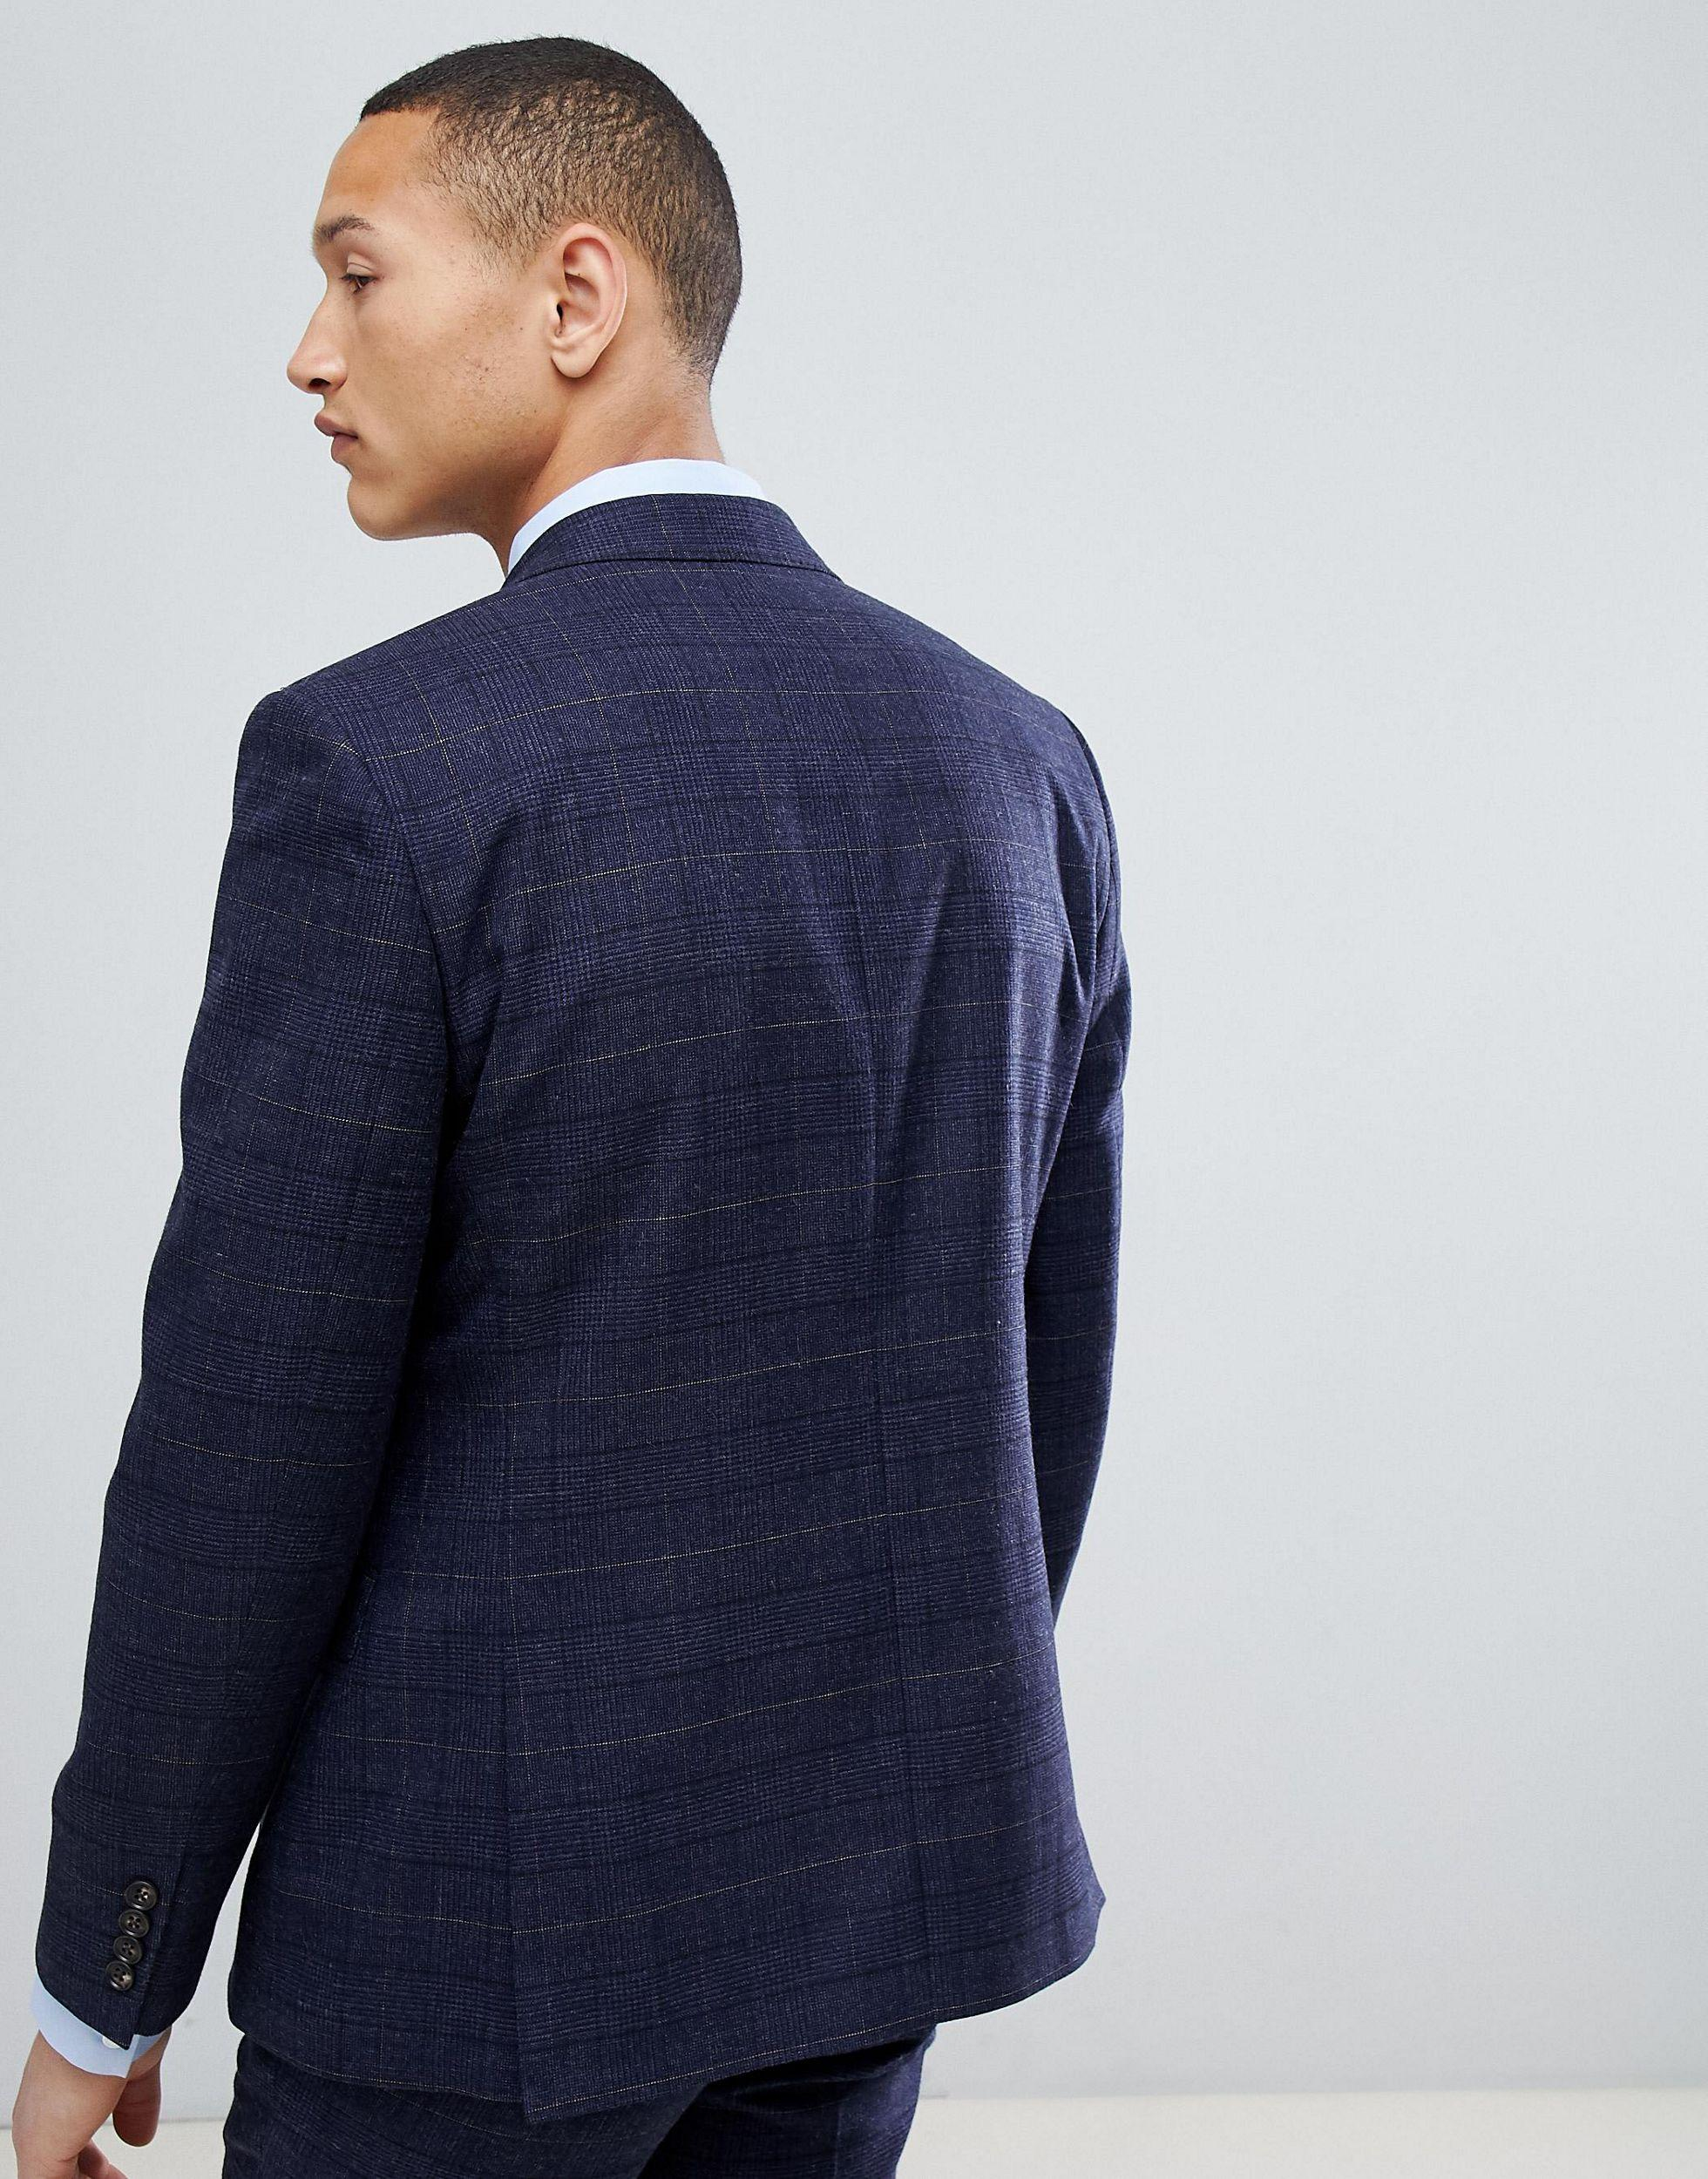 Moss Bros Moss London Wedding Skinny Suit Jacket in Navy (Blue) for Men